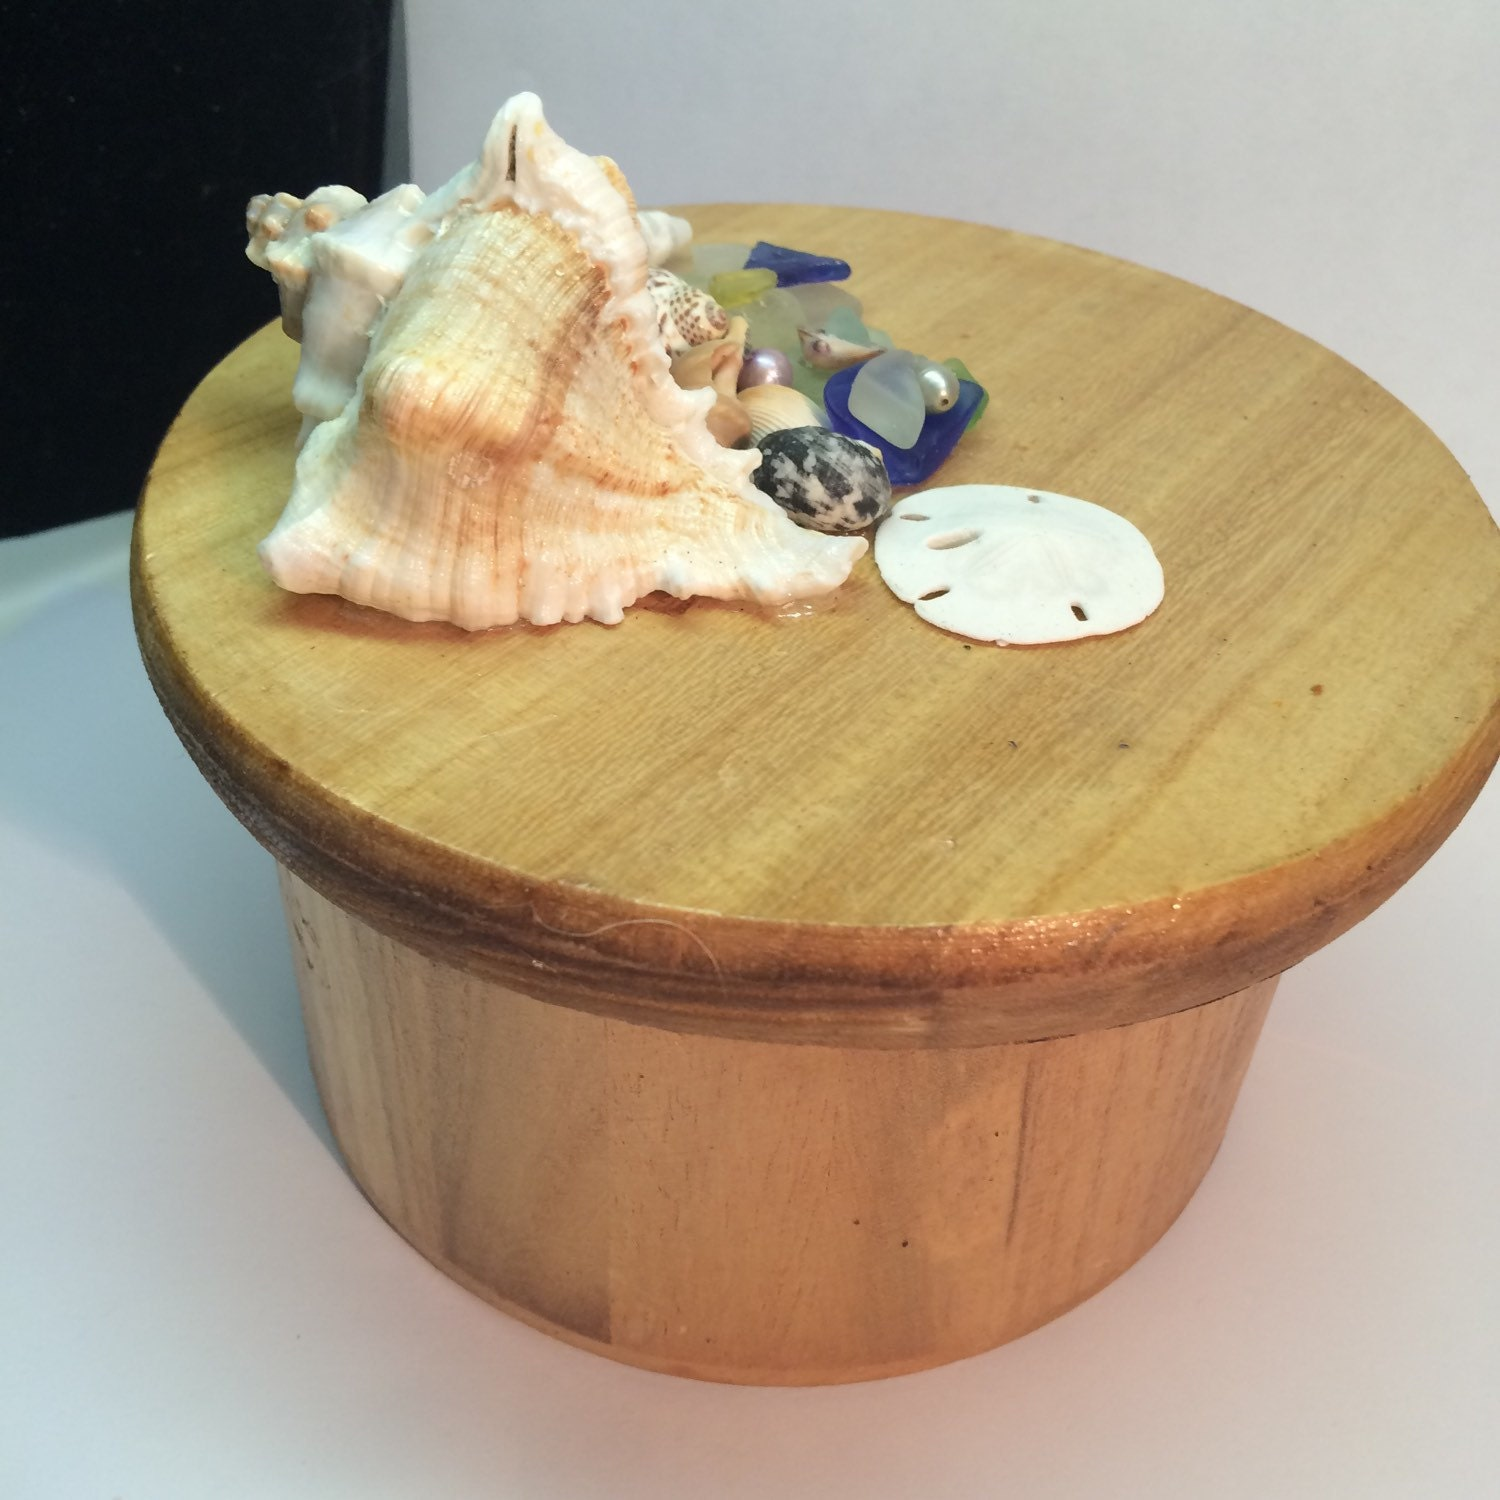 mermaid treasure box handcrafted round wooden box with texas. Black Bedroom Furniture Sets. Home Design Ideas